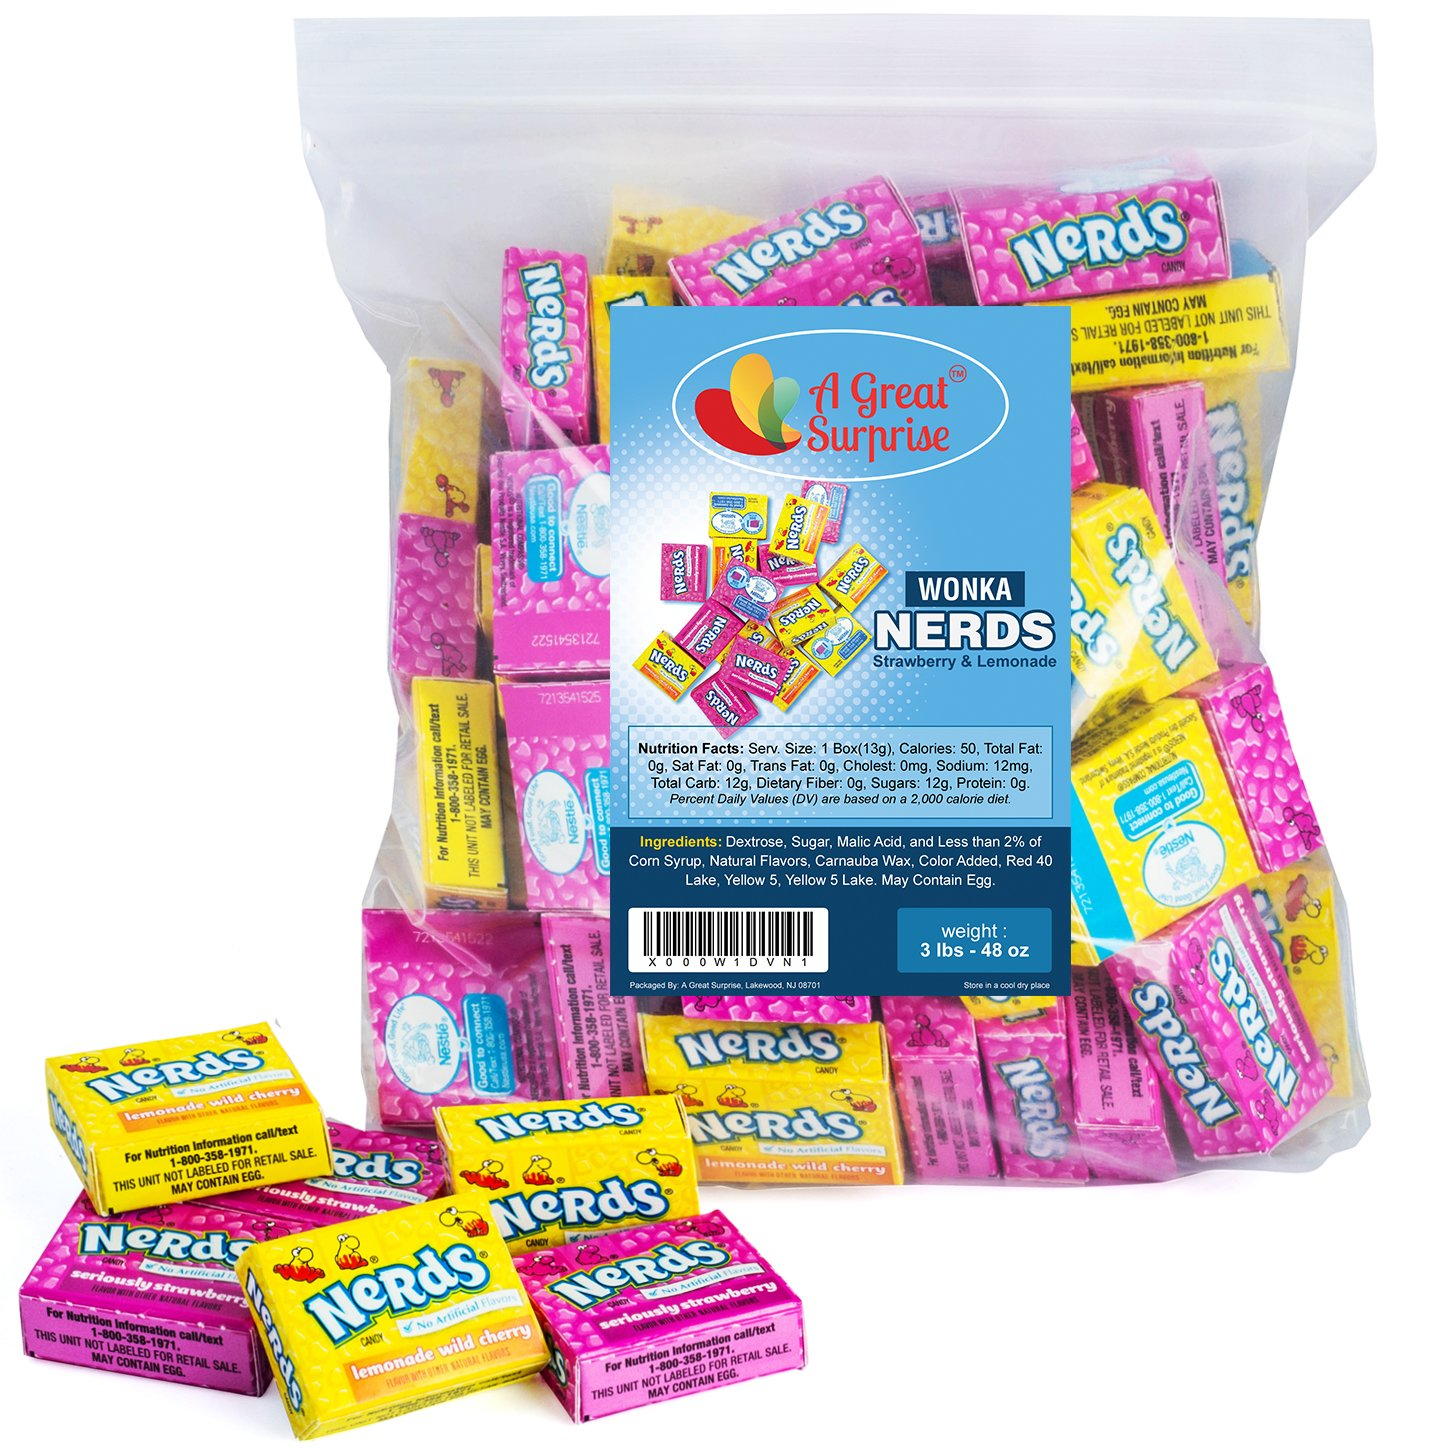 Nerds Candy - Wonka Nerds - Approx. 75+ Mini Boxes - Bulk Candy - 3 LB by A Great Surprise